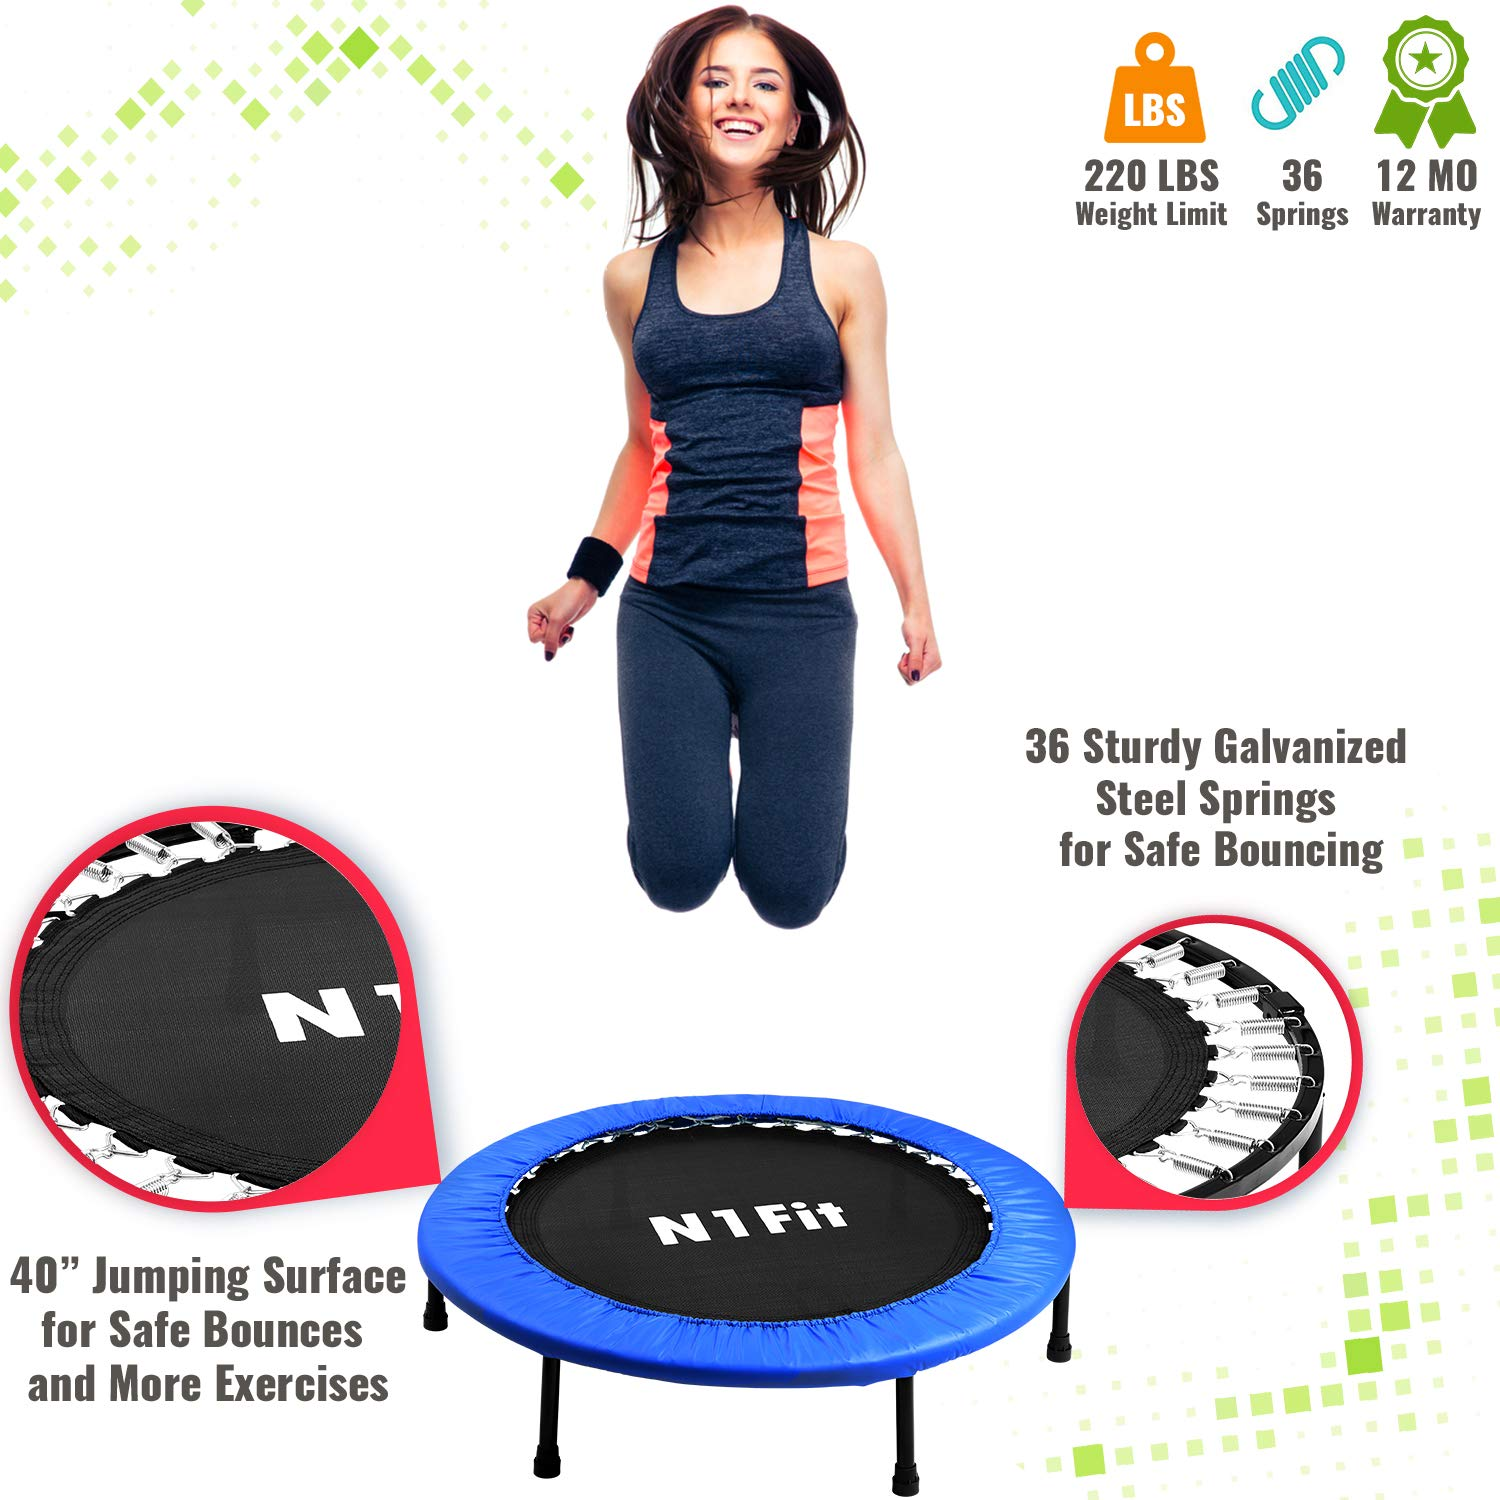 N1Fit Mini Trampoline for Adults - Exercise Trampoline, Mini Trampolines, Personal Trampoline, Trampoline Small Indoor, Rebounding Tiny Trampoline with Springs System for Home Cardio Workouts 40'' by N1Fit (Image #1)